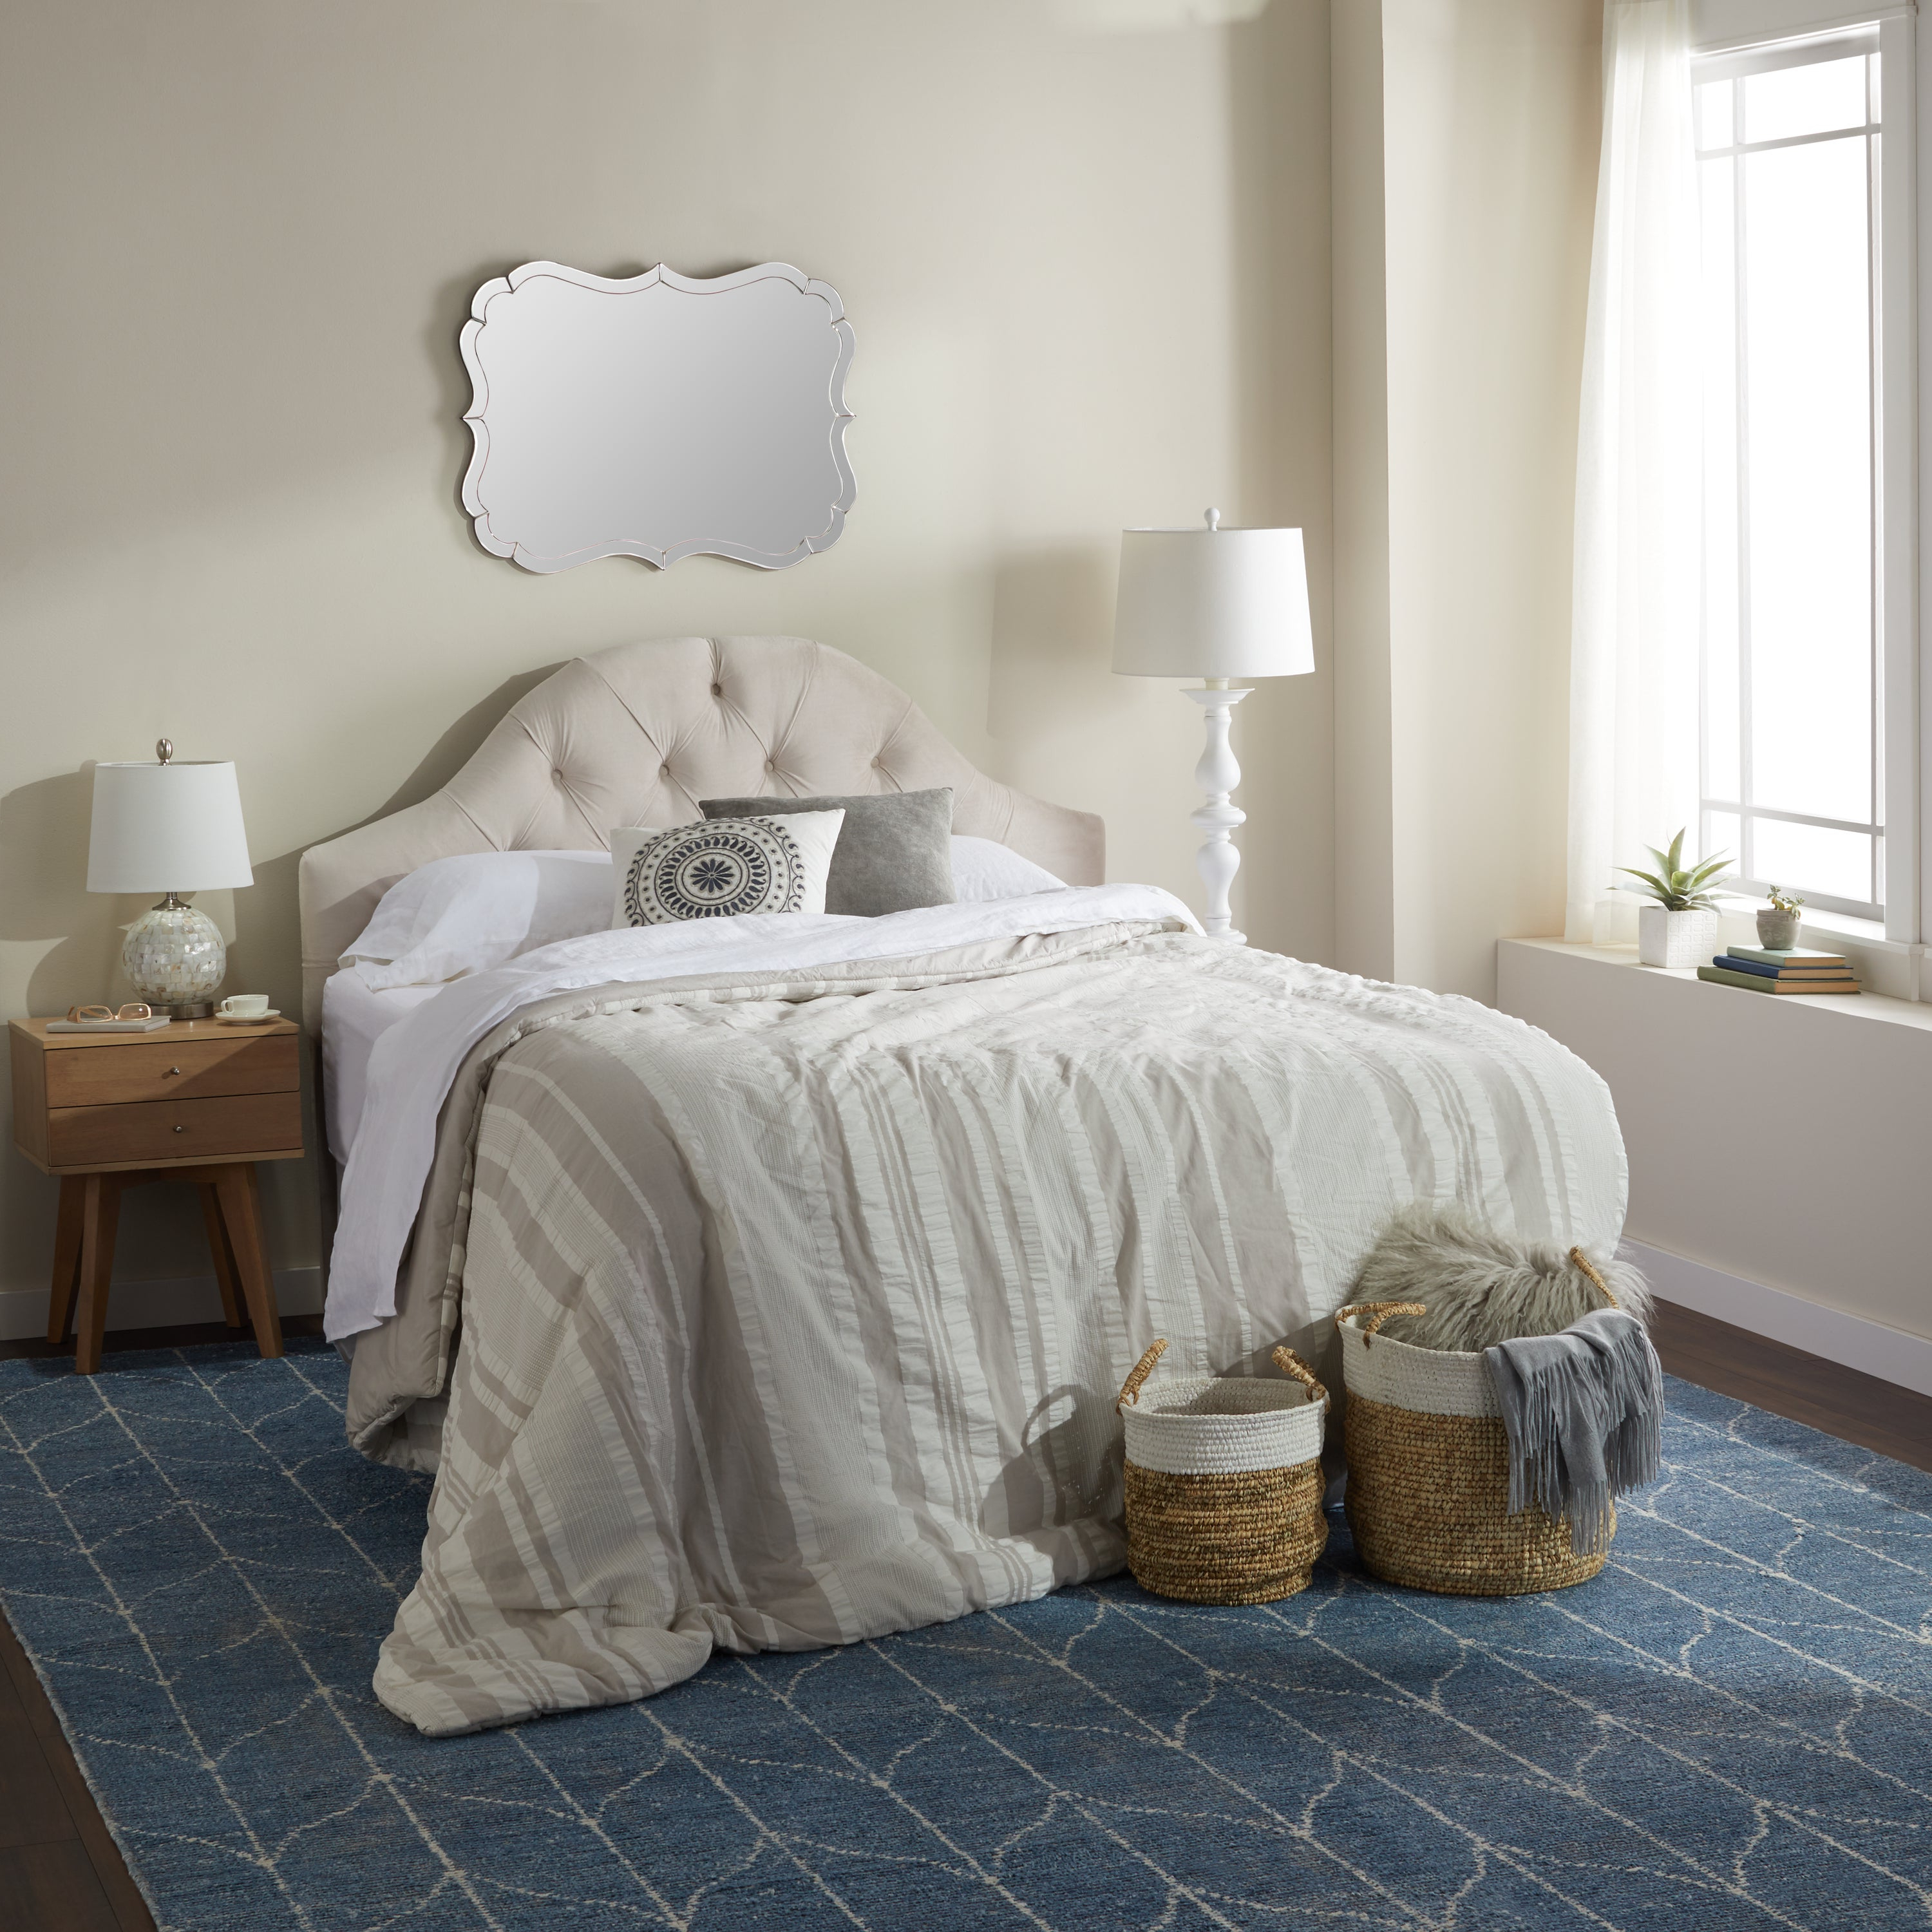 Bedroom Wall Mirrors With Favorite Abbyson Olivia Rectangle Wall Mirror – Silver (View 18 of 20)